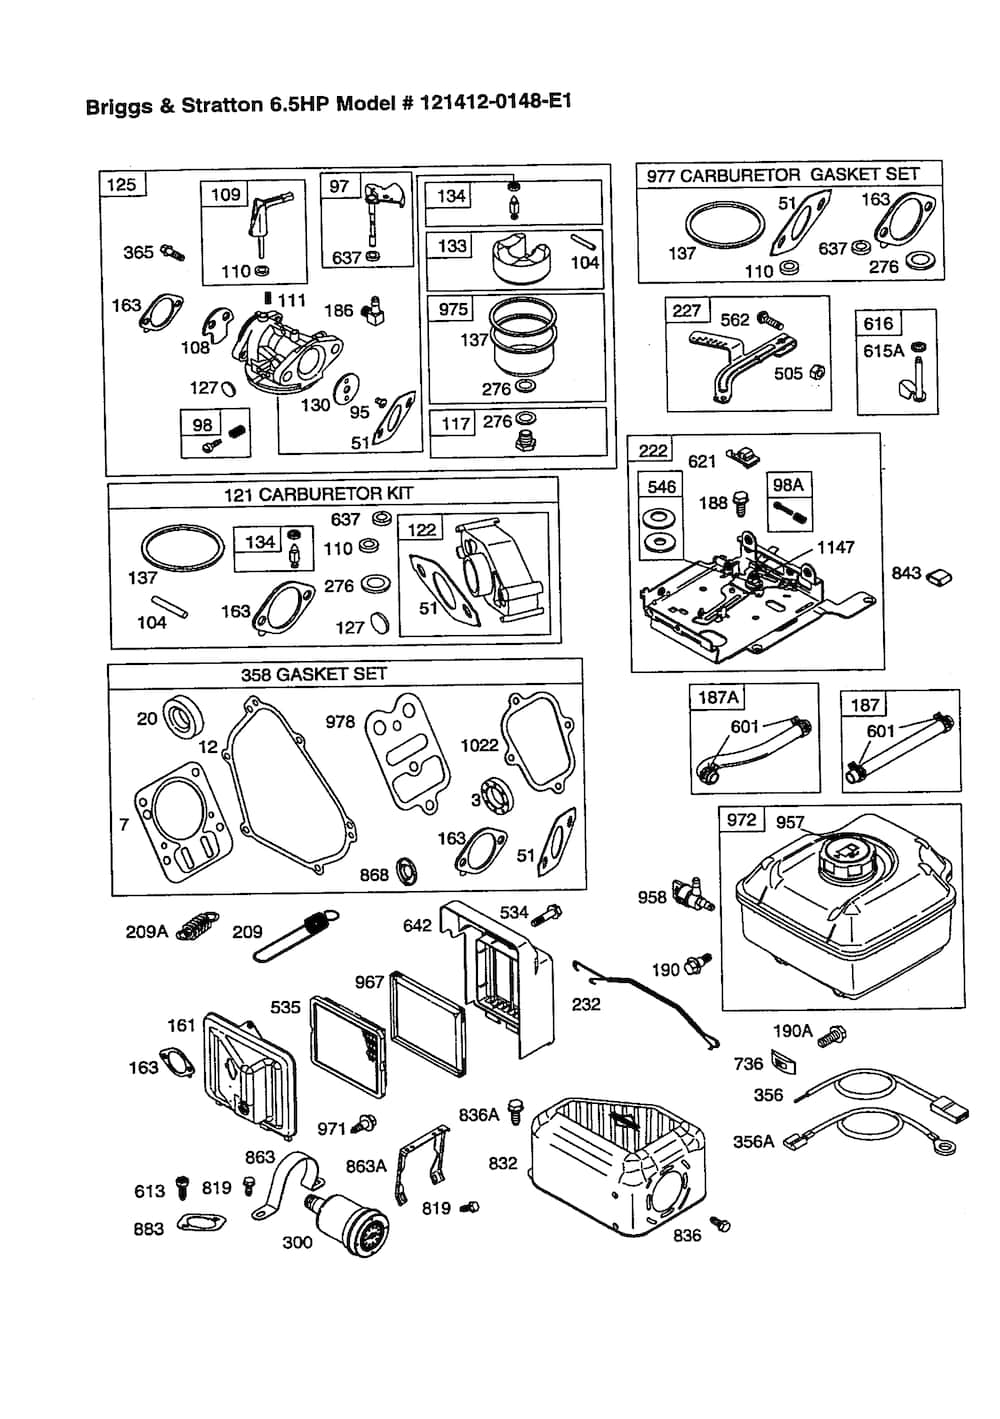 Briggs & Stratton 6.5 Hp Engine Parts | Model 1214120148E1 | Sears with regard to Briggs And Stratton Carburetor Parts Diagram